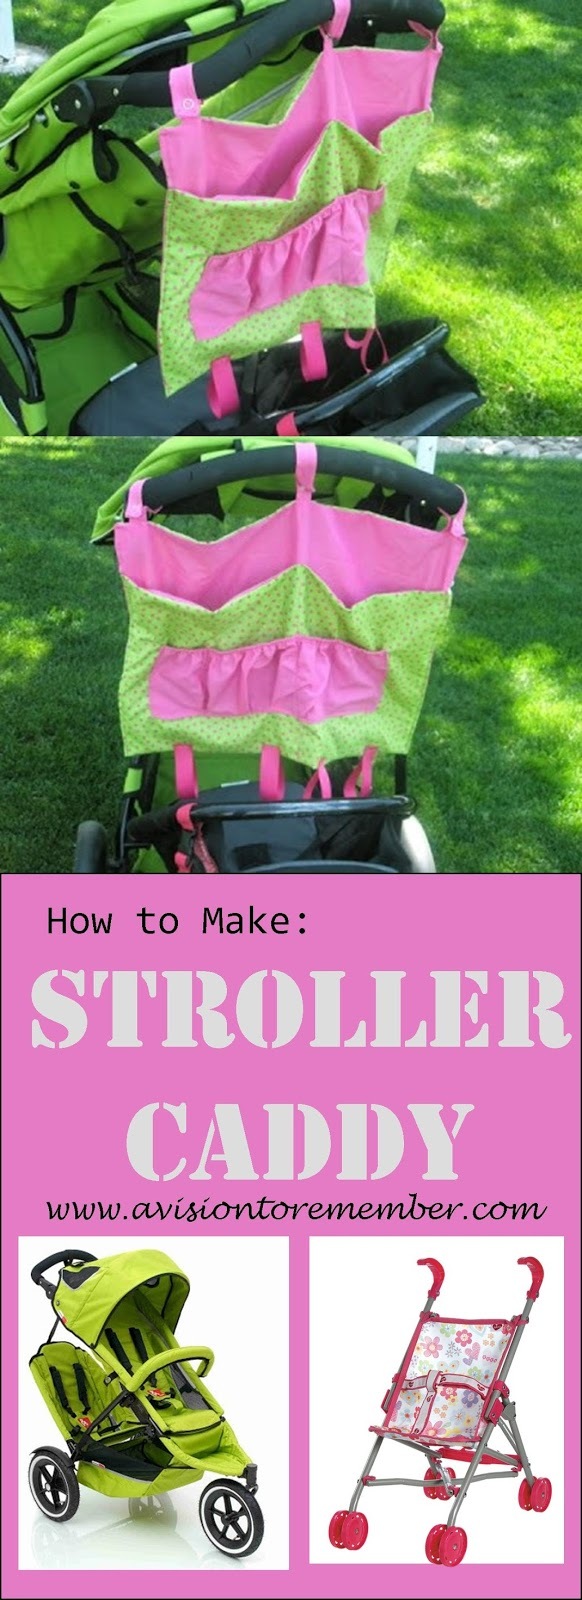 How to Make a Stroller Caddy by A Vision to Remember